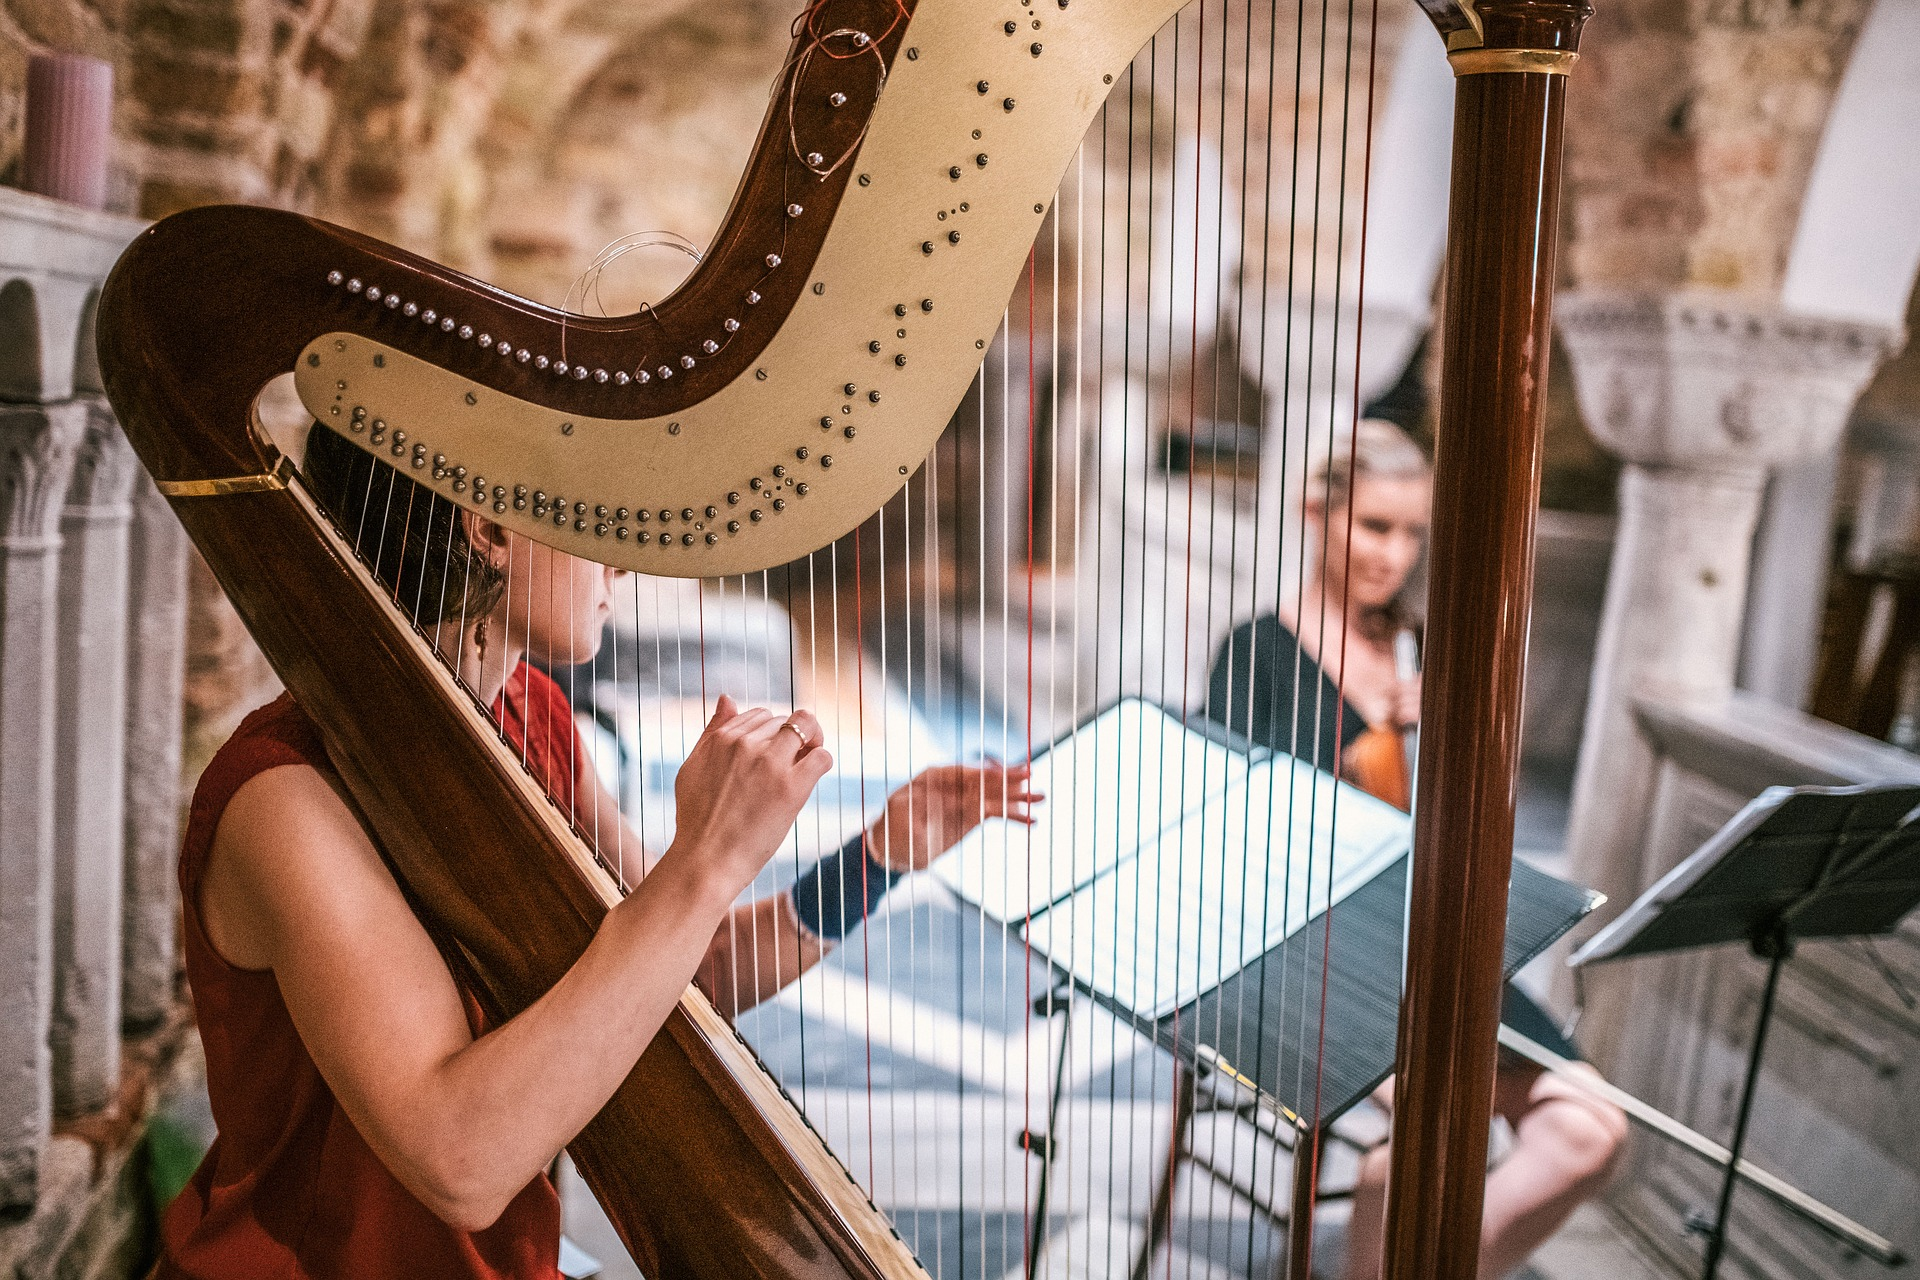 Harp - The plucked string instrument that sounds like a beautiful waterfall of notes from heaven. Sometimes there's just one harp, sometimes two… and every once in a while, the rare thrill of more harps.